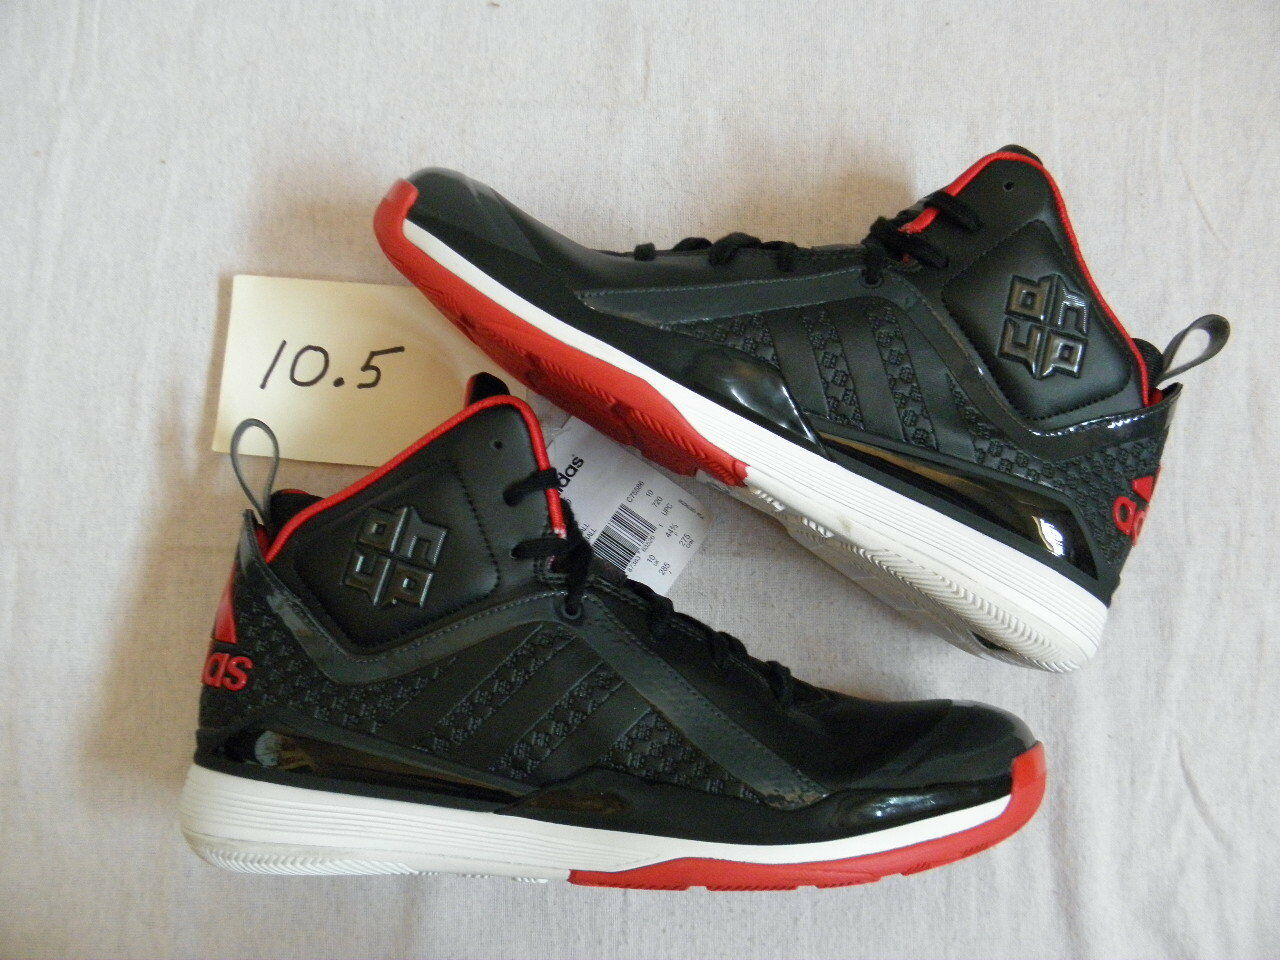 Adidas D Howard 5 V Dwight D12 Dwight4Prez Price reduction